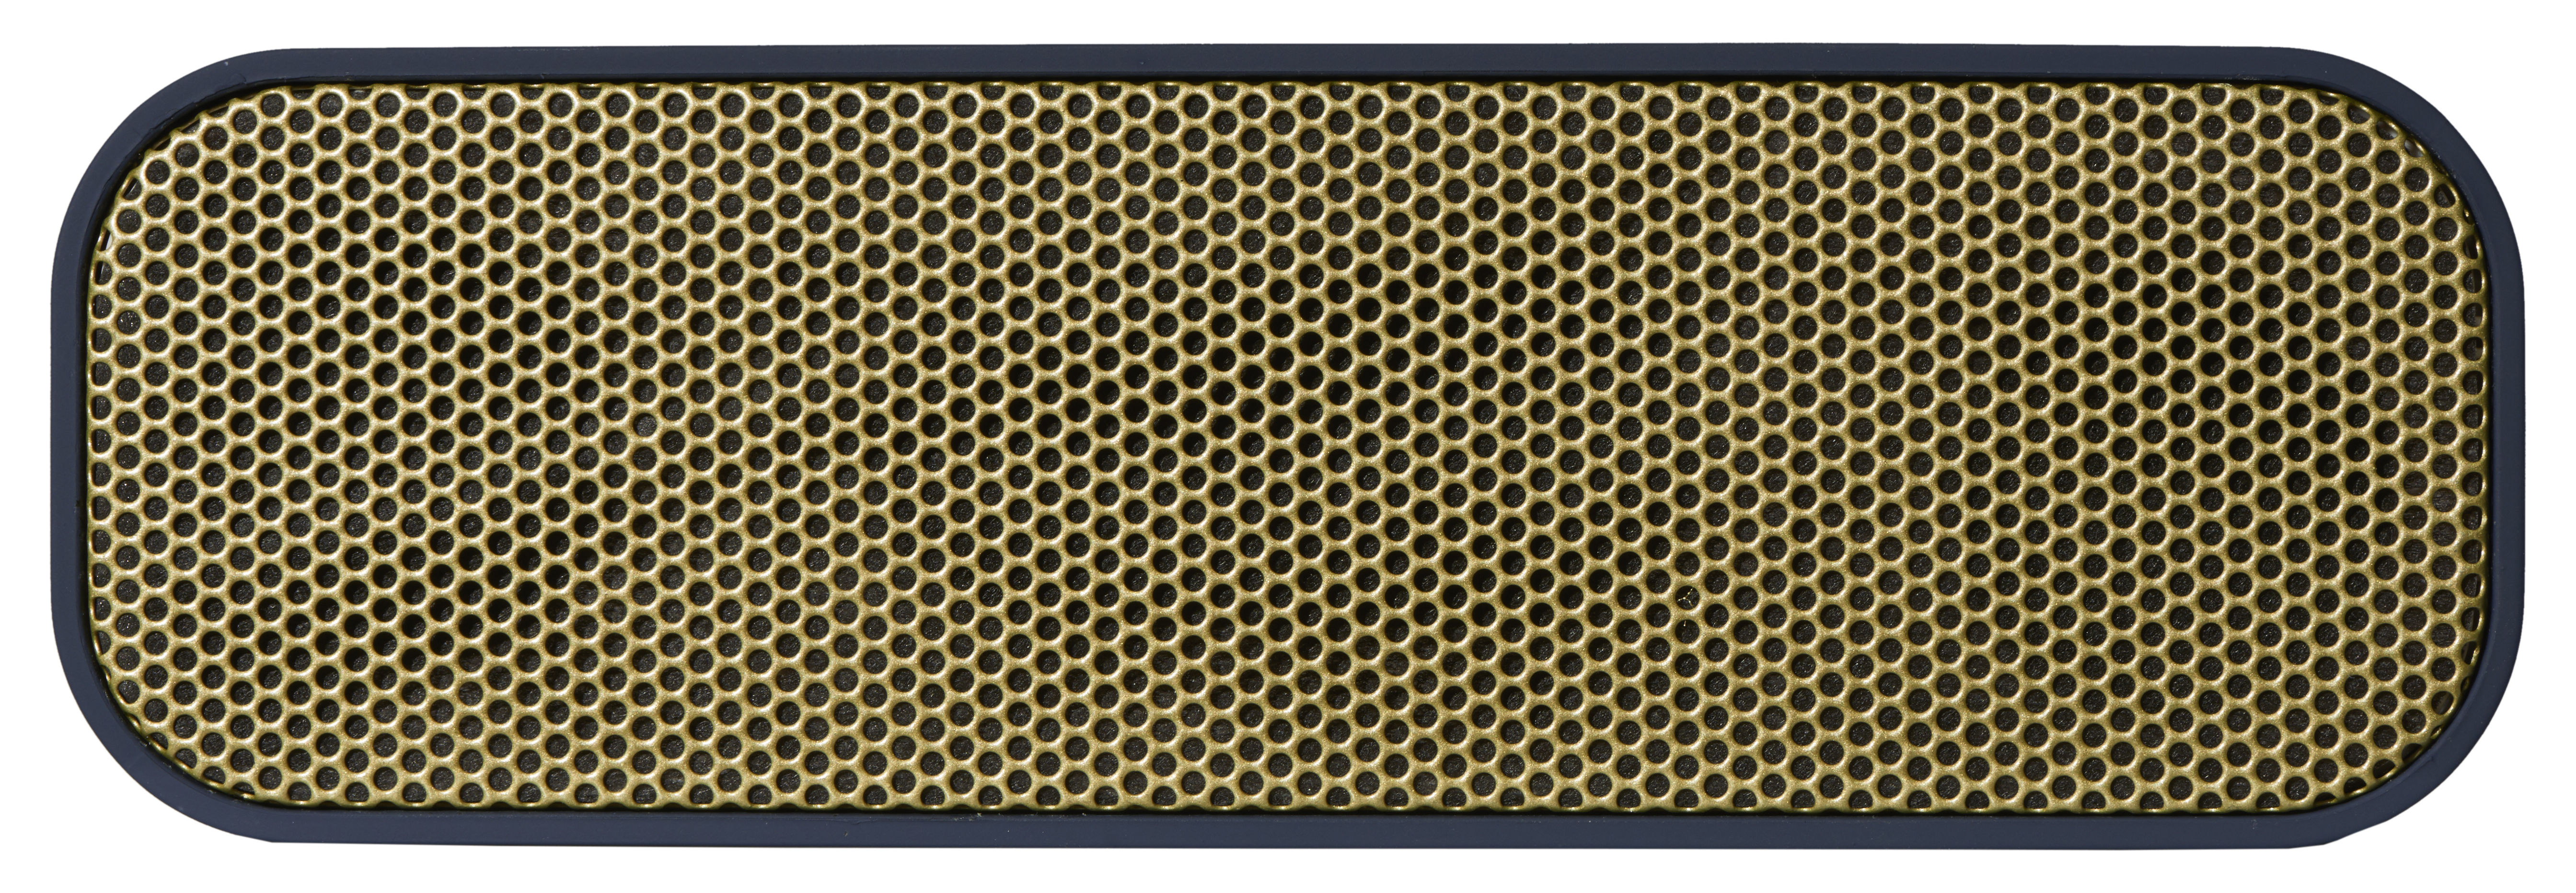 Trends - Home sweet home - aGROOVE Bluetooth speaker - Wireless by Kreafunk - Blue & Gold - Plastic material